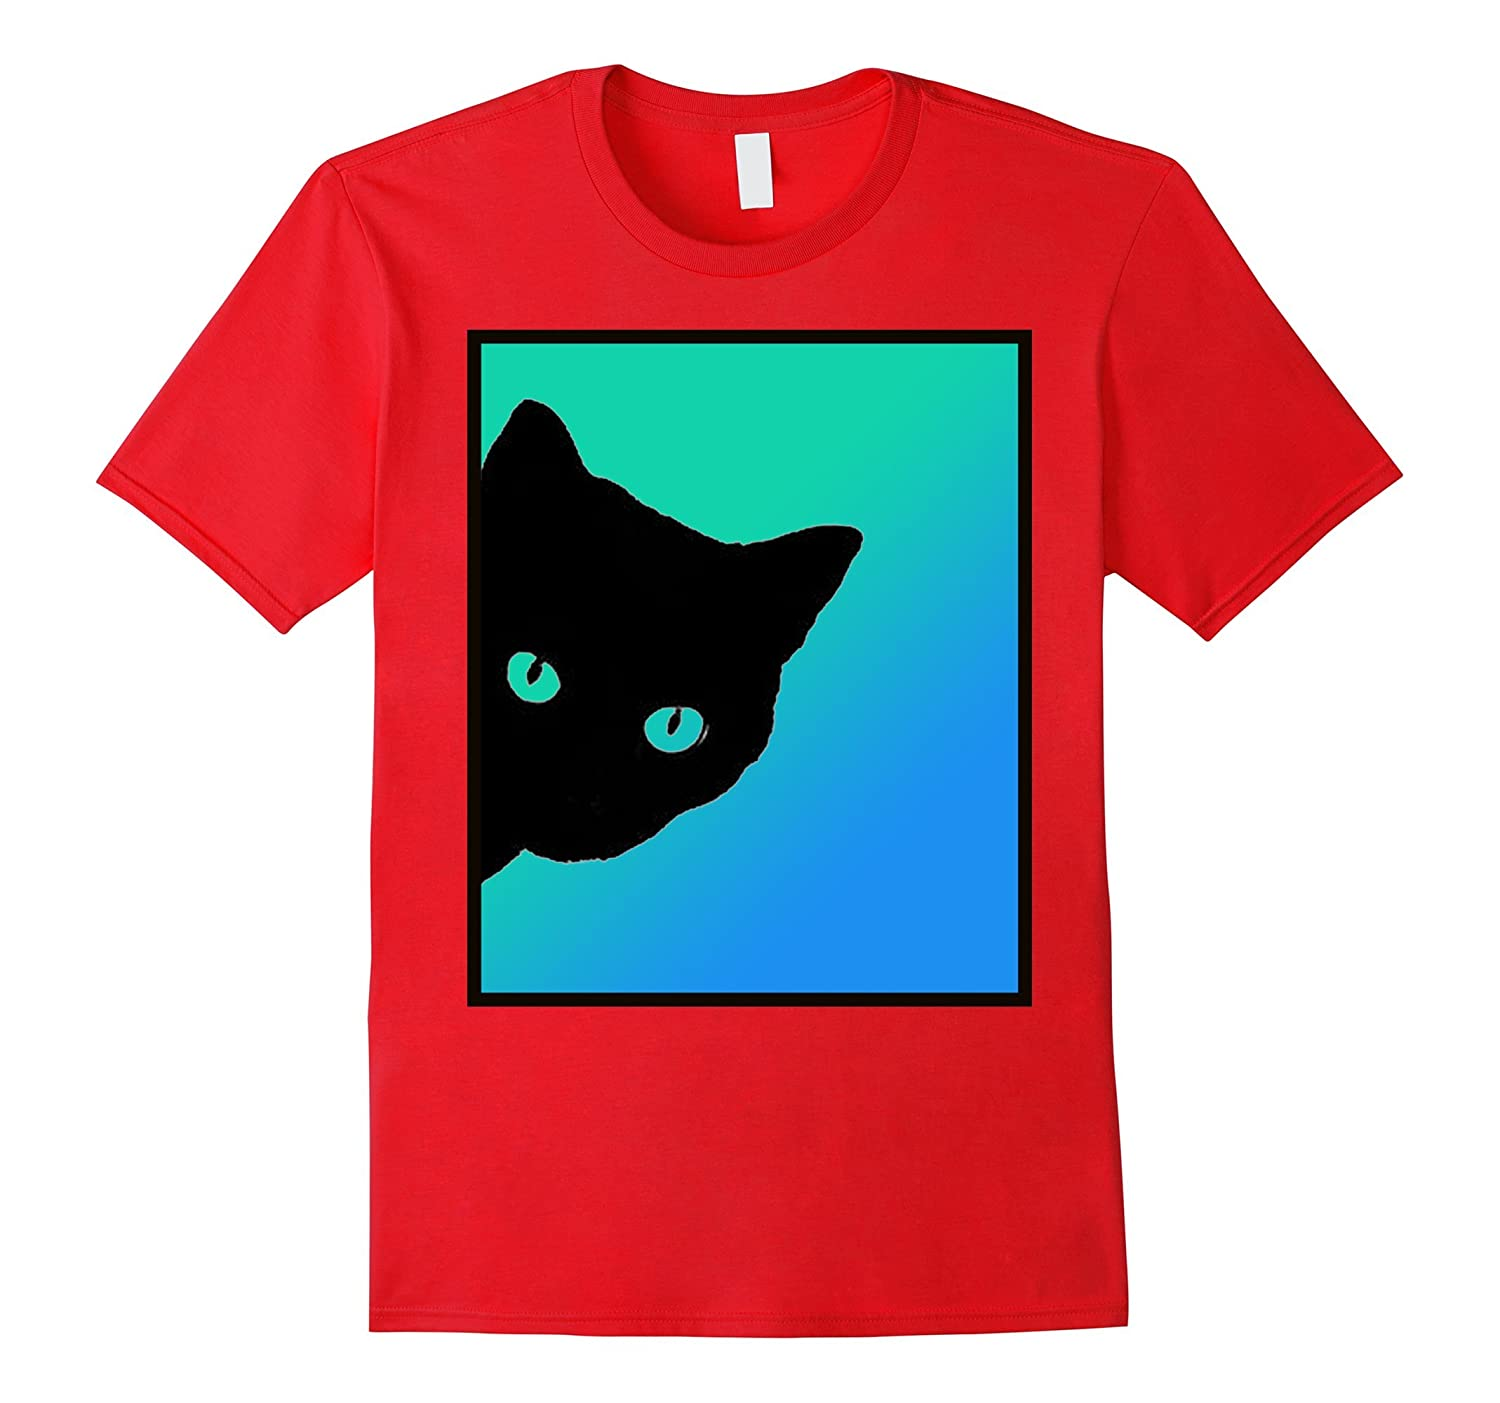 Black Cat Blue Green Tshirt Designed By Cats Made Better-FL